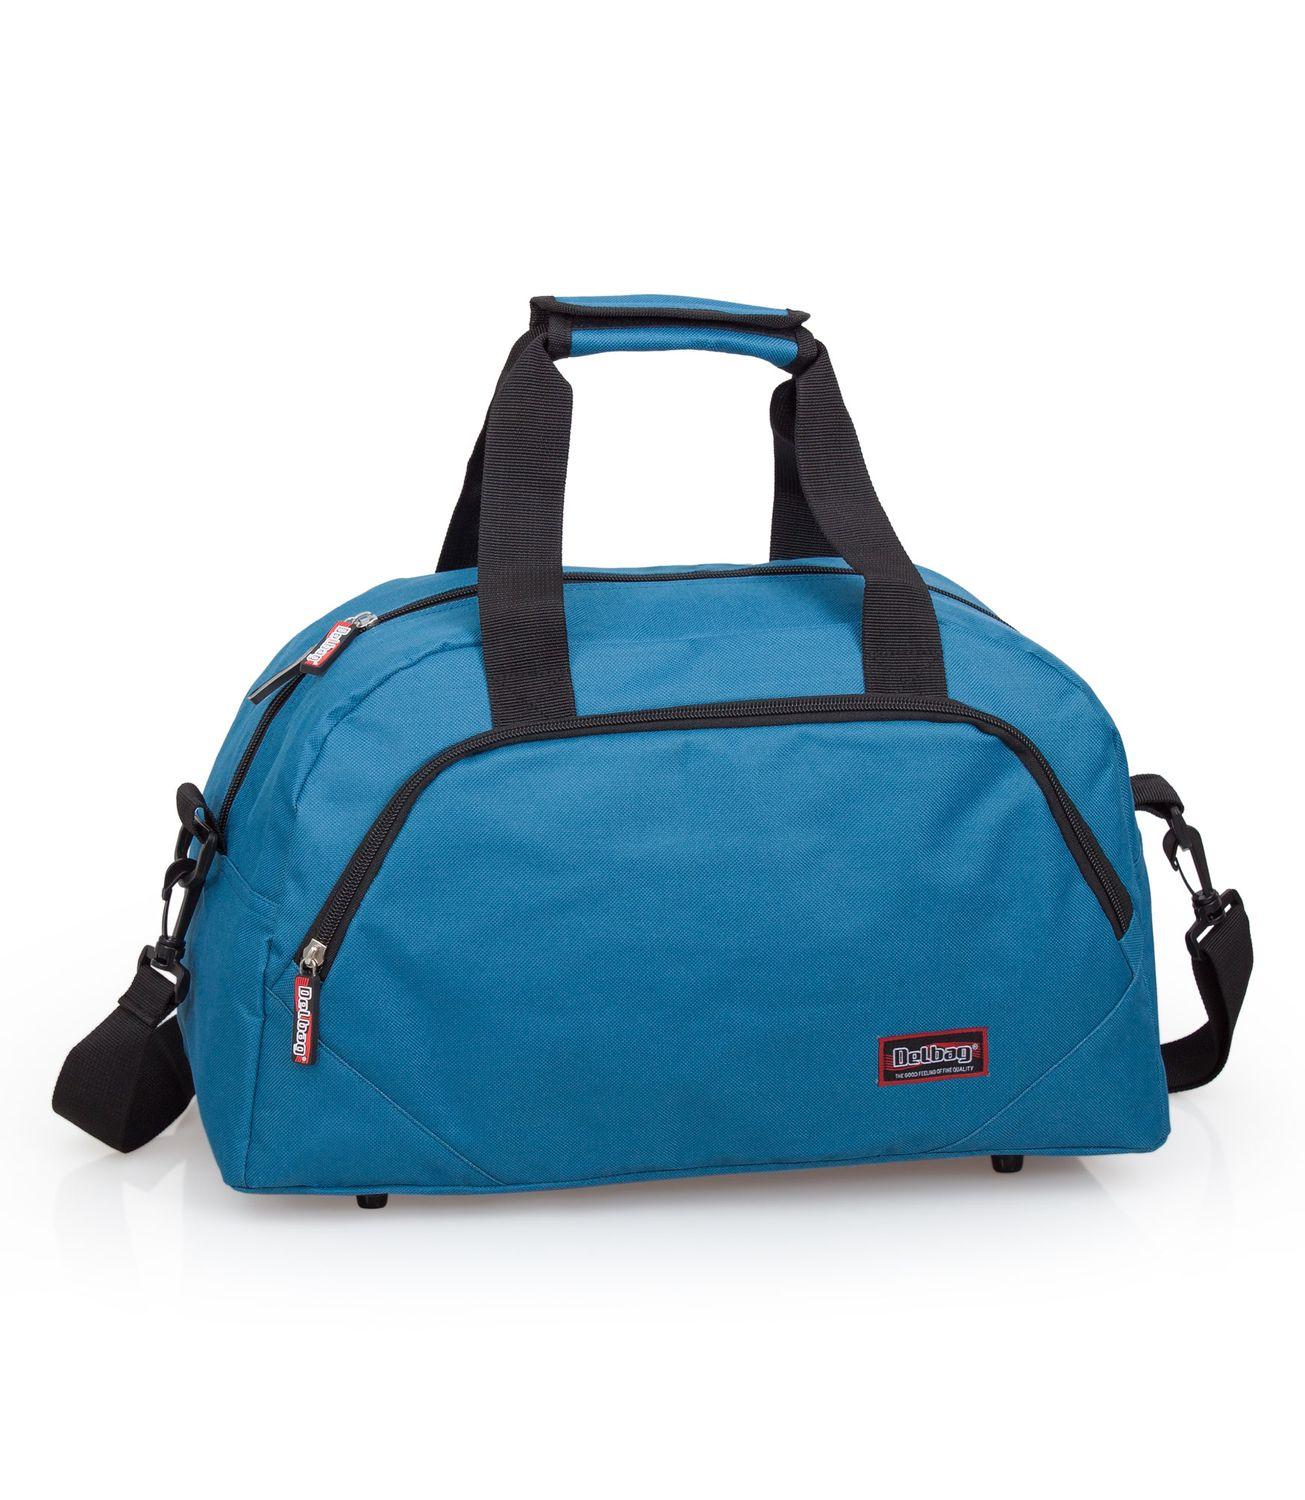 Delbag Travel Holdall Bags – image 9